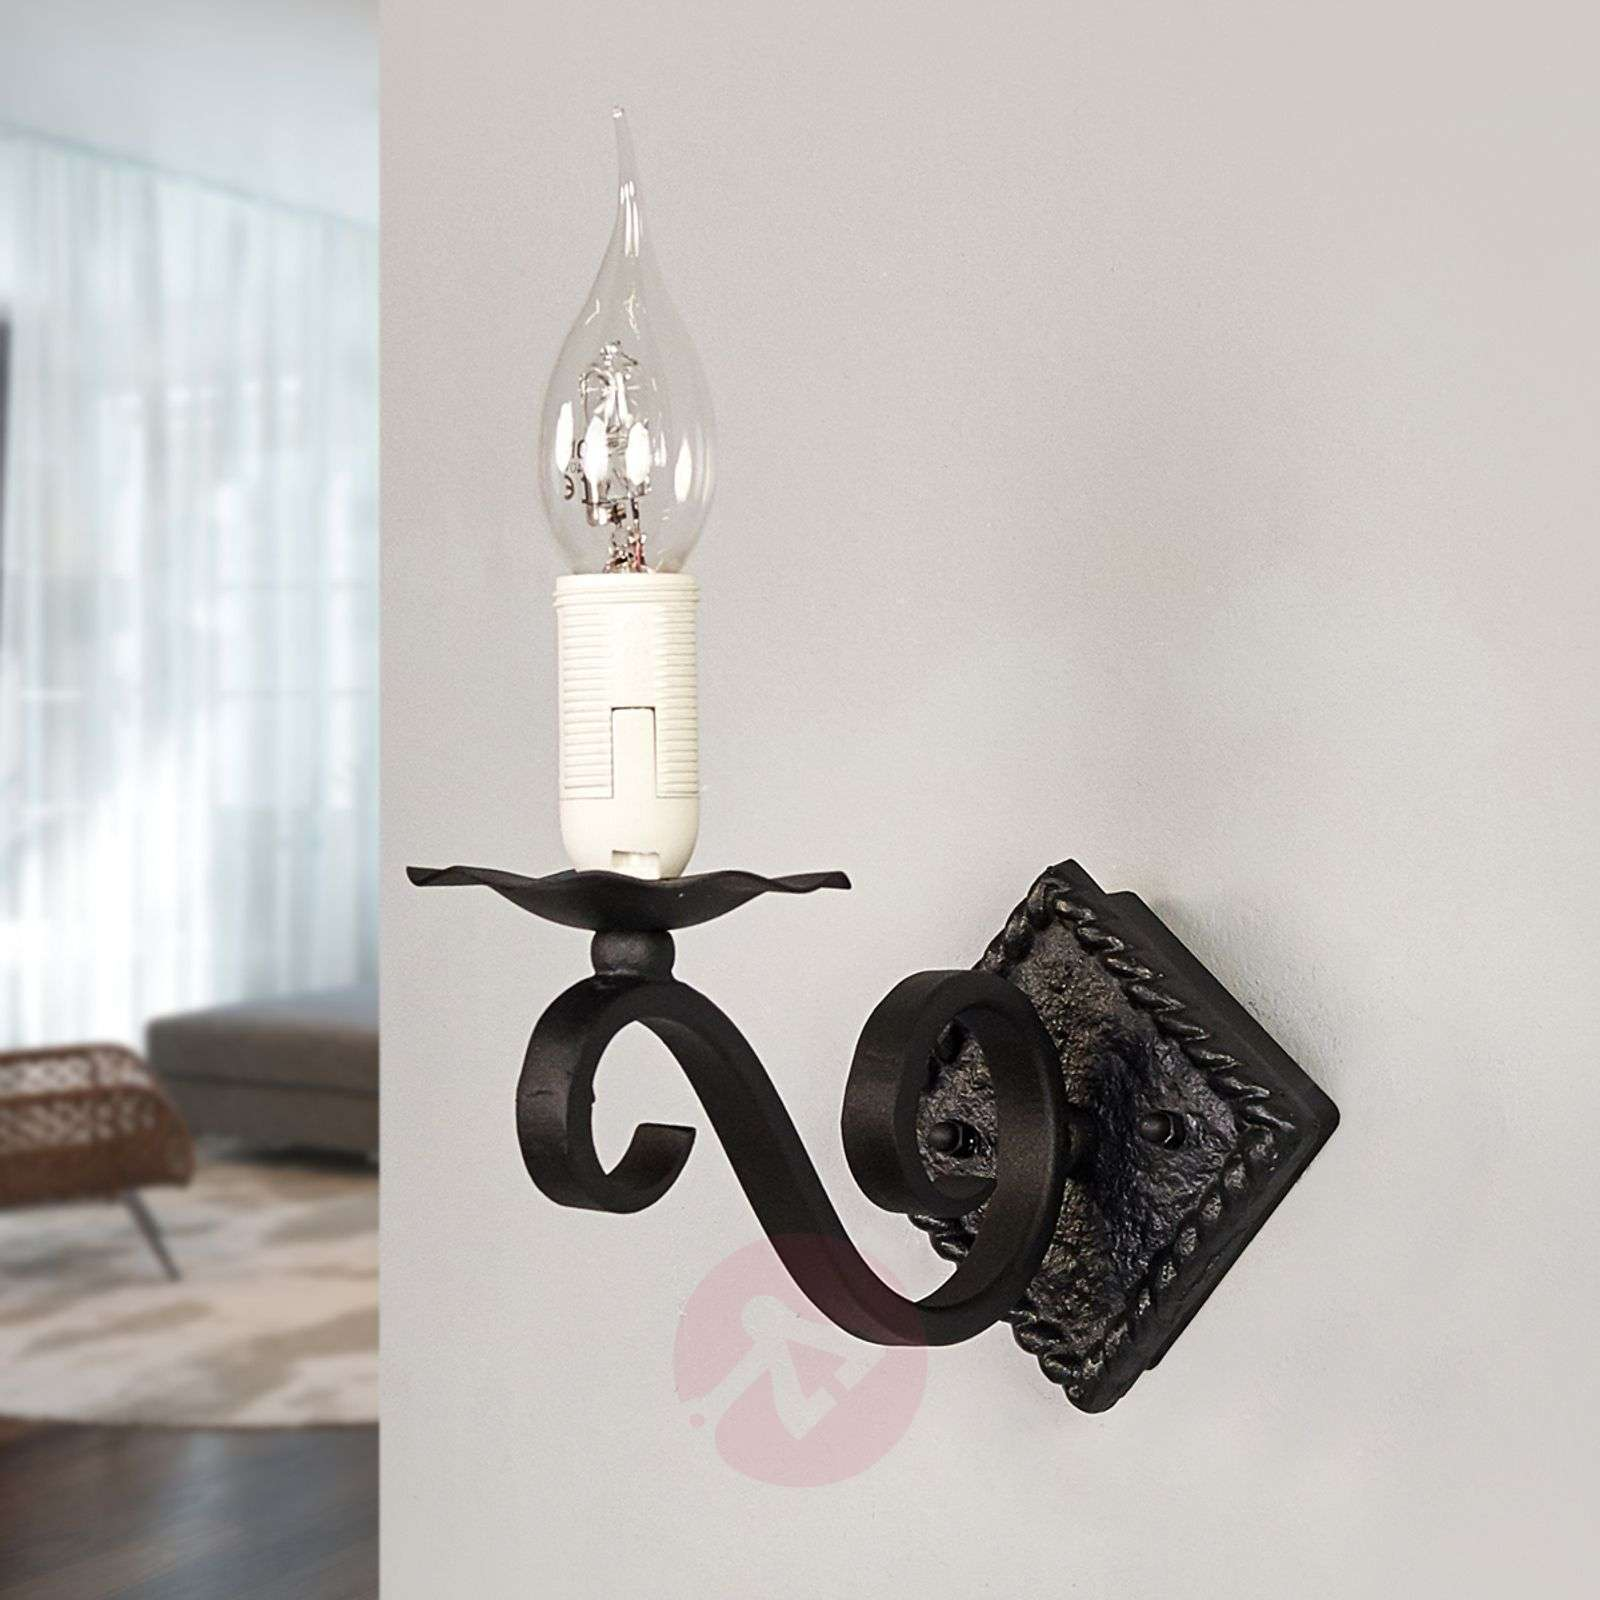 Rectory Wall Light Wrought Iron-3048067X-03